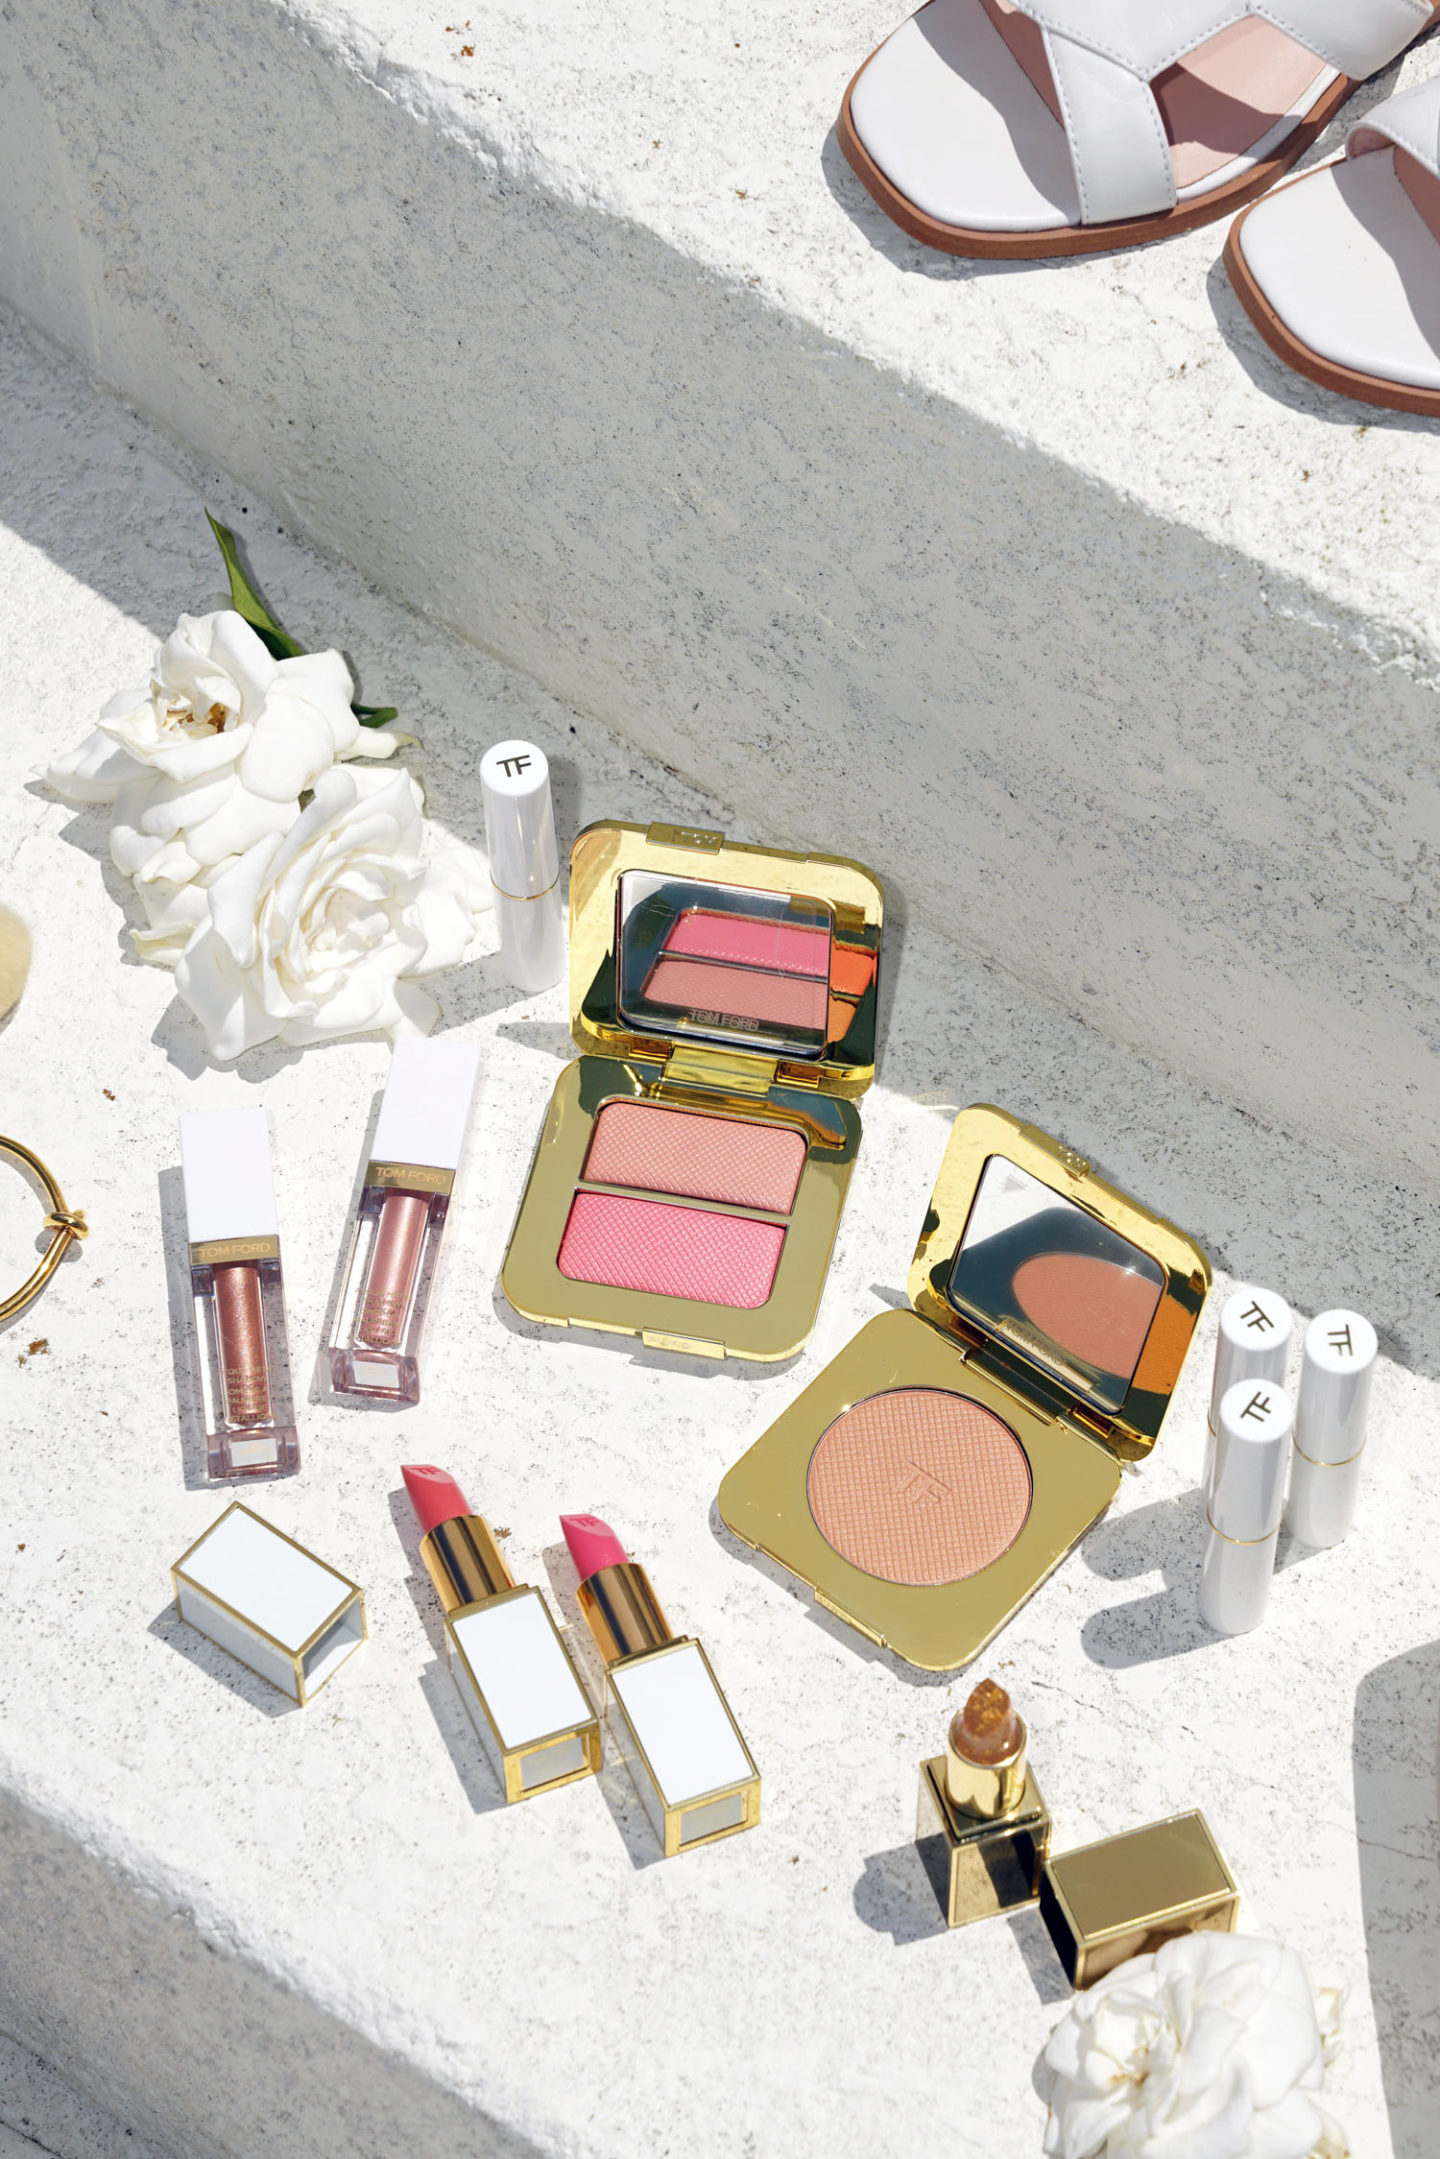 Tom Ford Beauty Soleil 2019 Review et échantillons